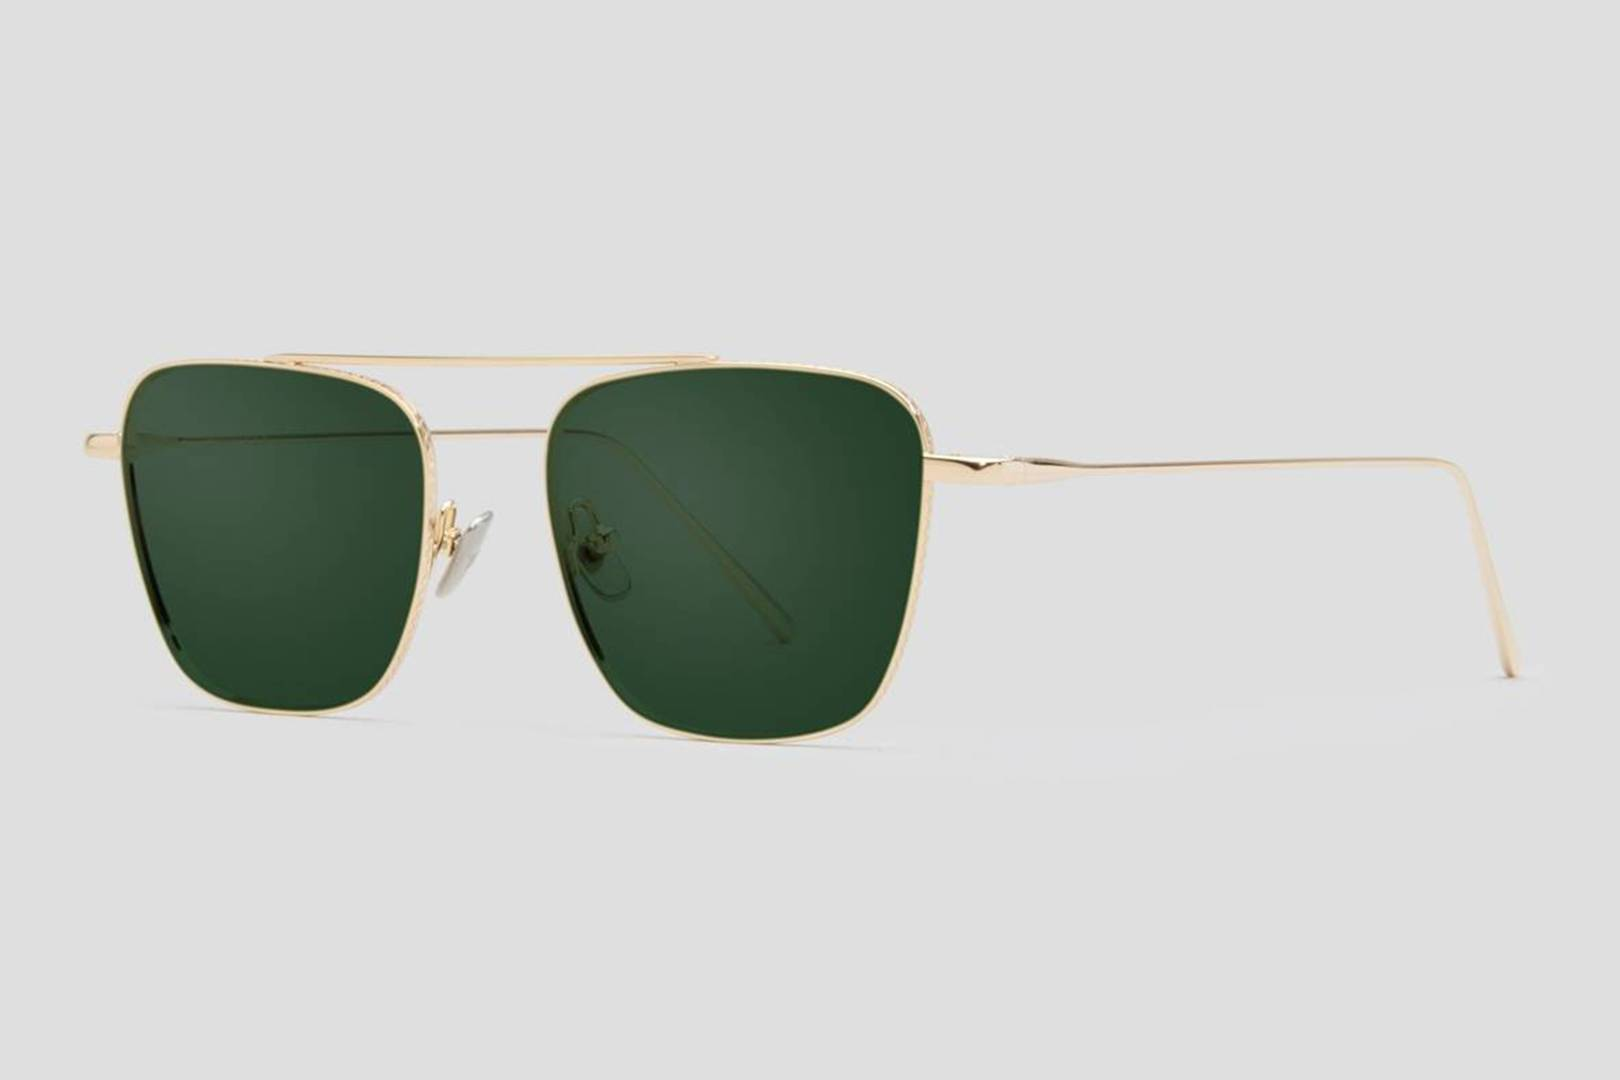 e2cc013042a Best sunglasses 2019  the most stylish new shades for men